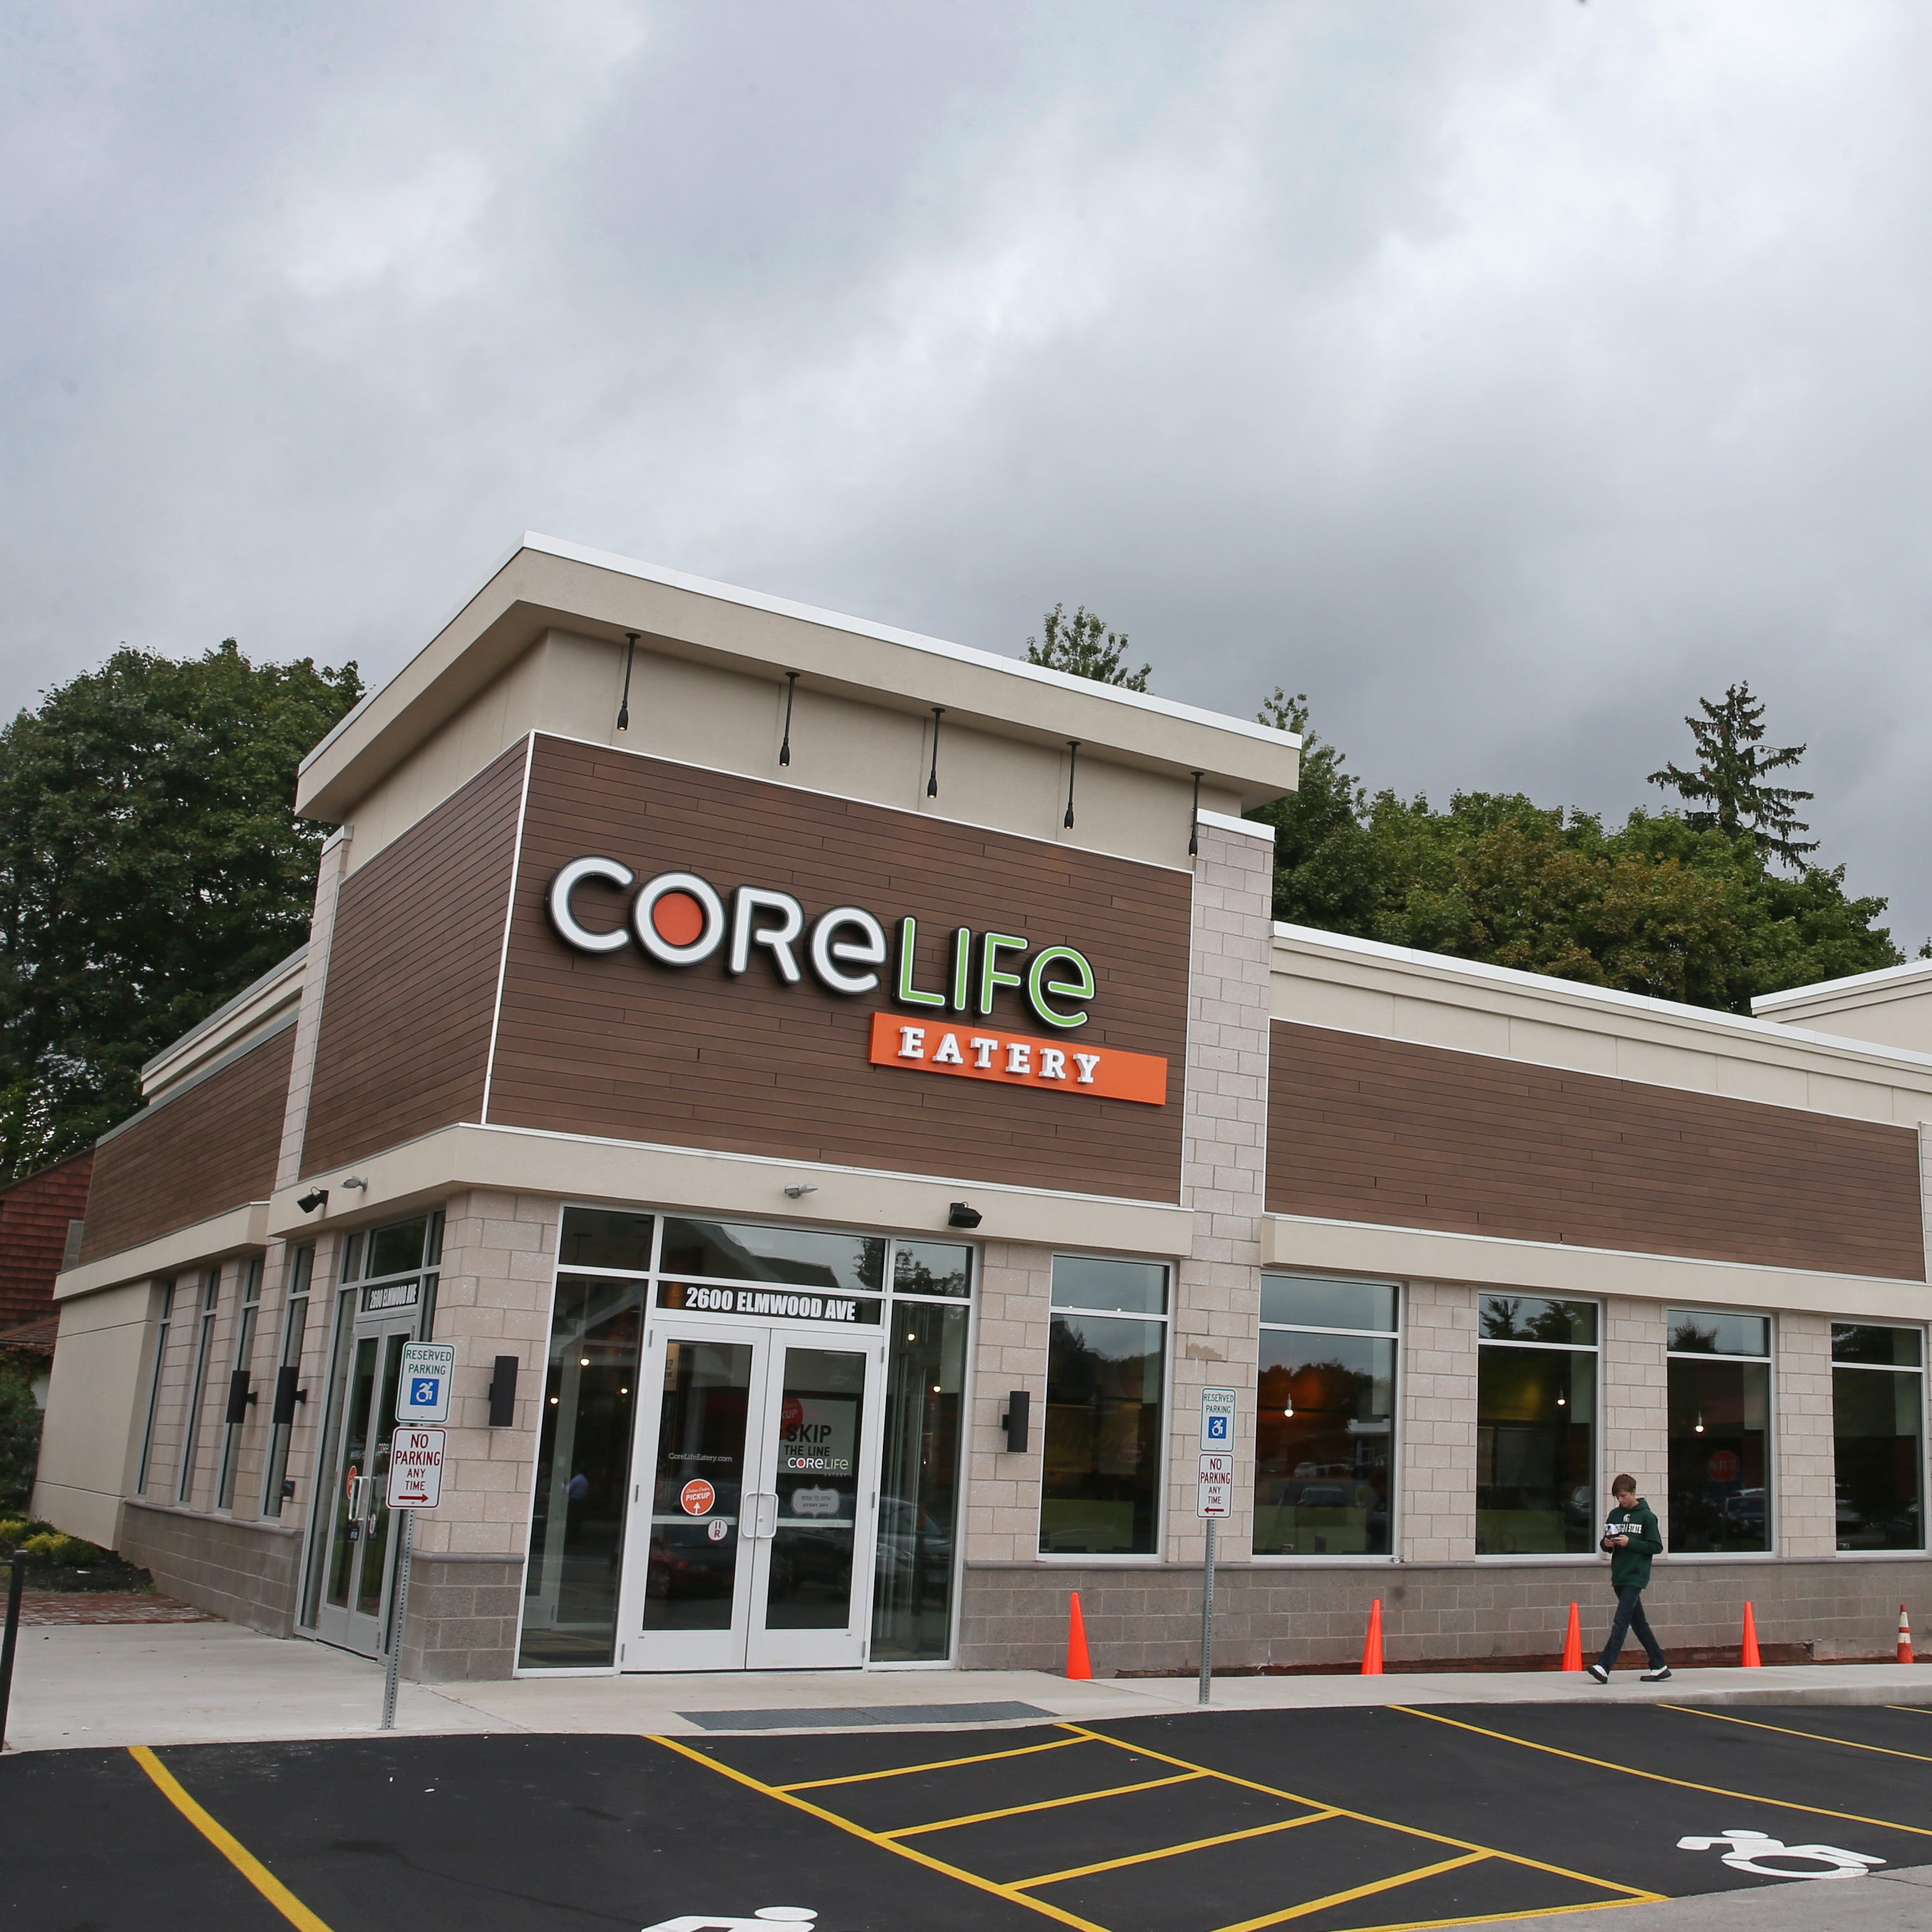 CoreLife opens in Brighton and new family fun center in Greece